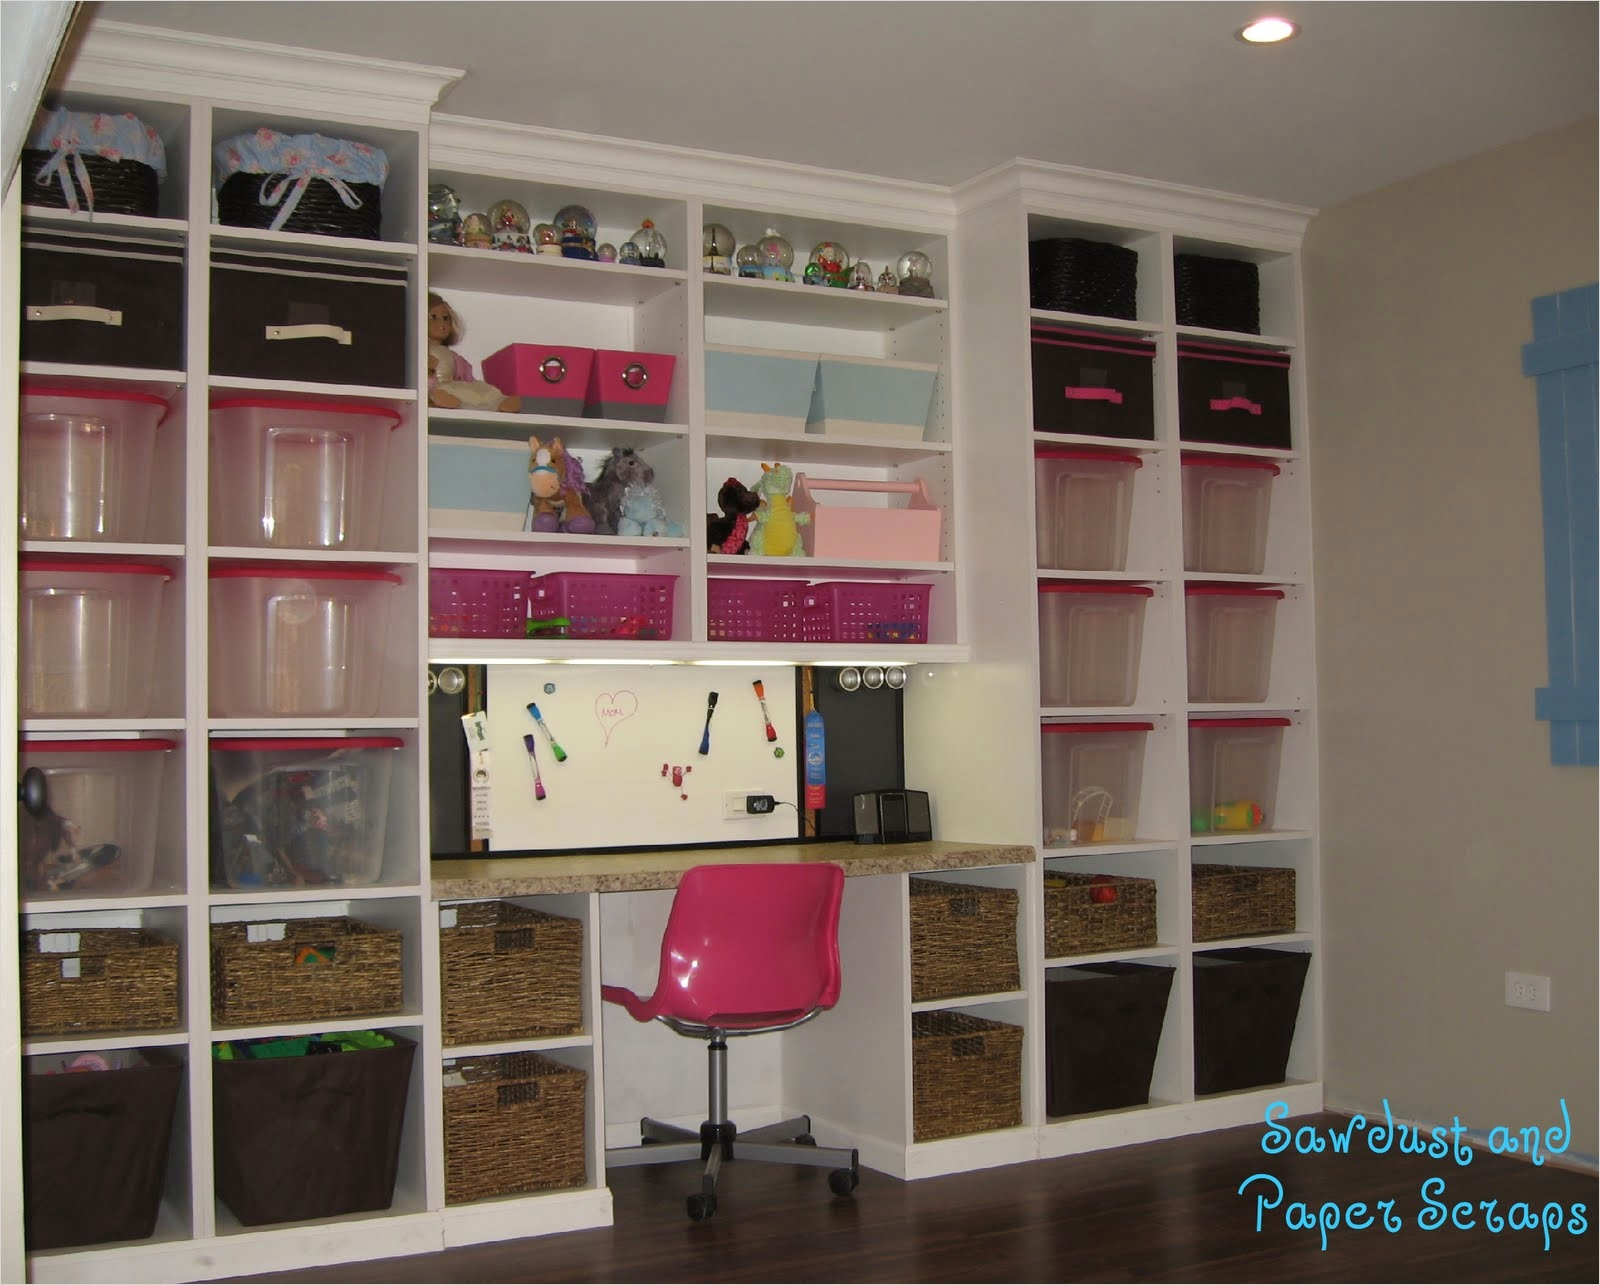 Craft Room Wall Shelving 85 Favorite Finds for the 17th Week Of 2010 5